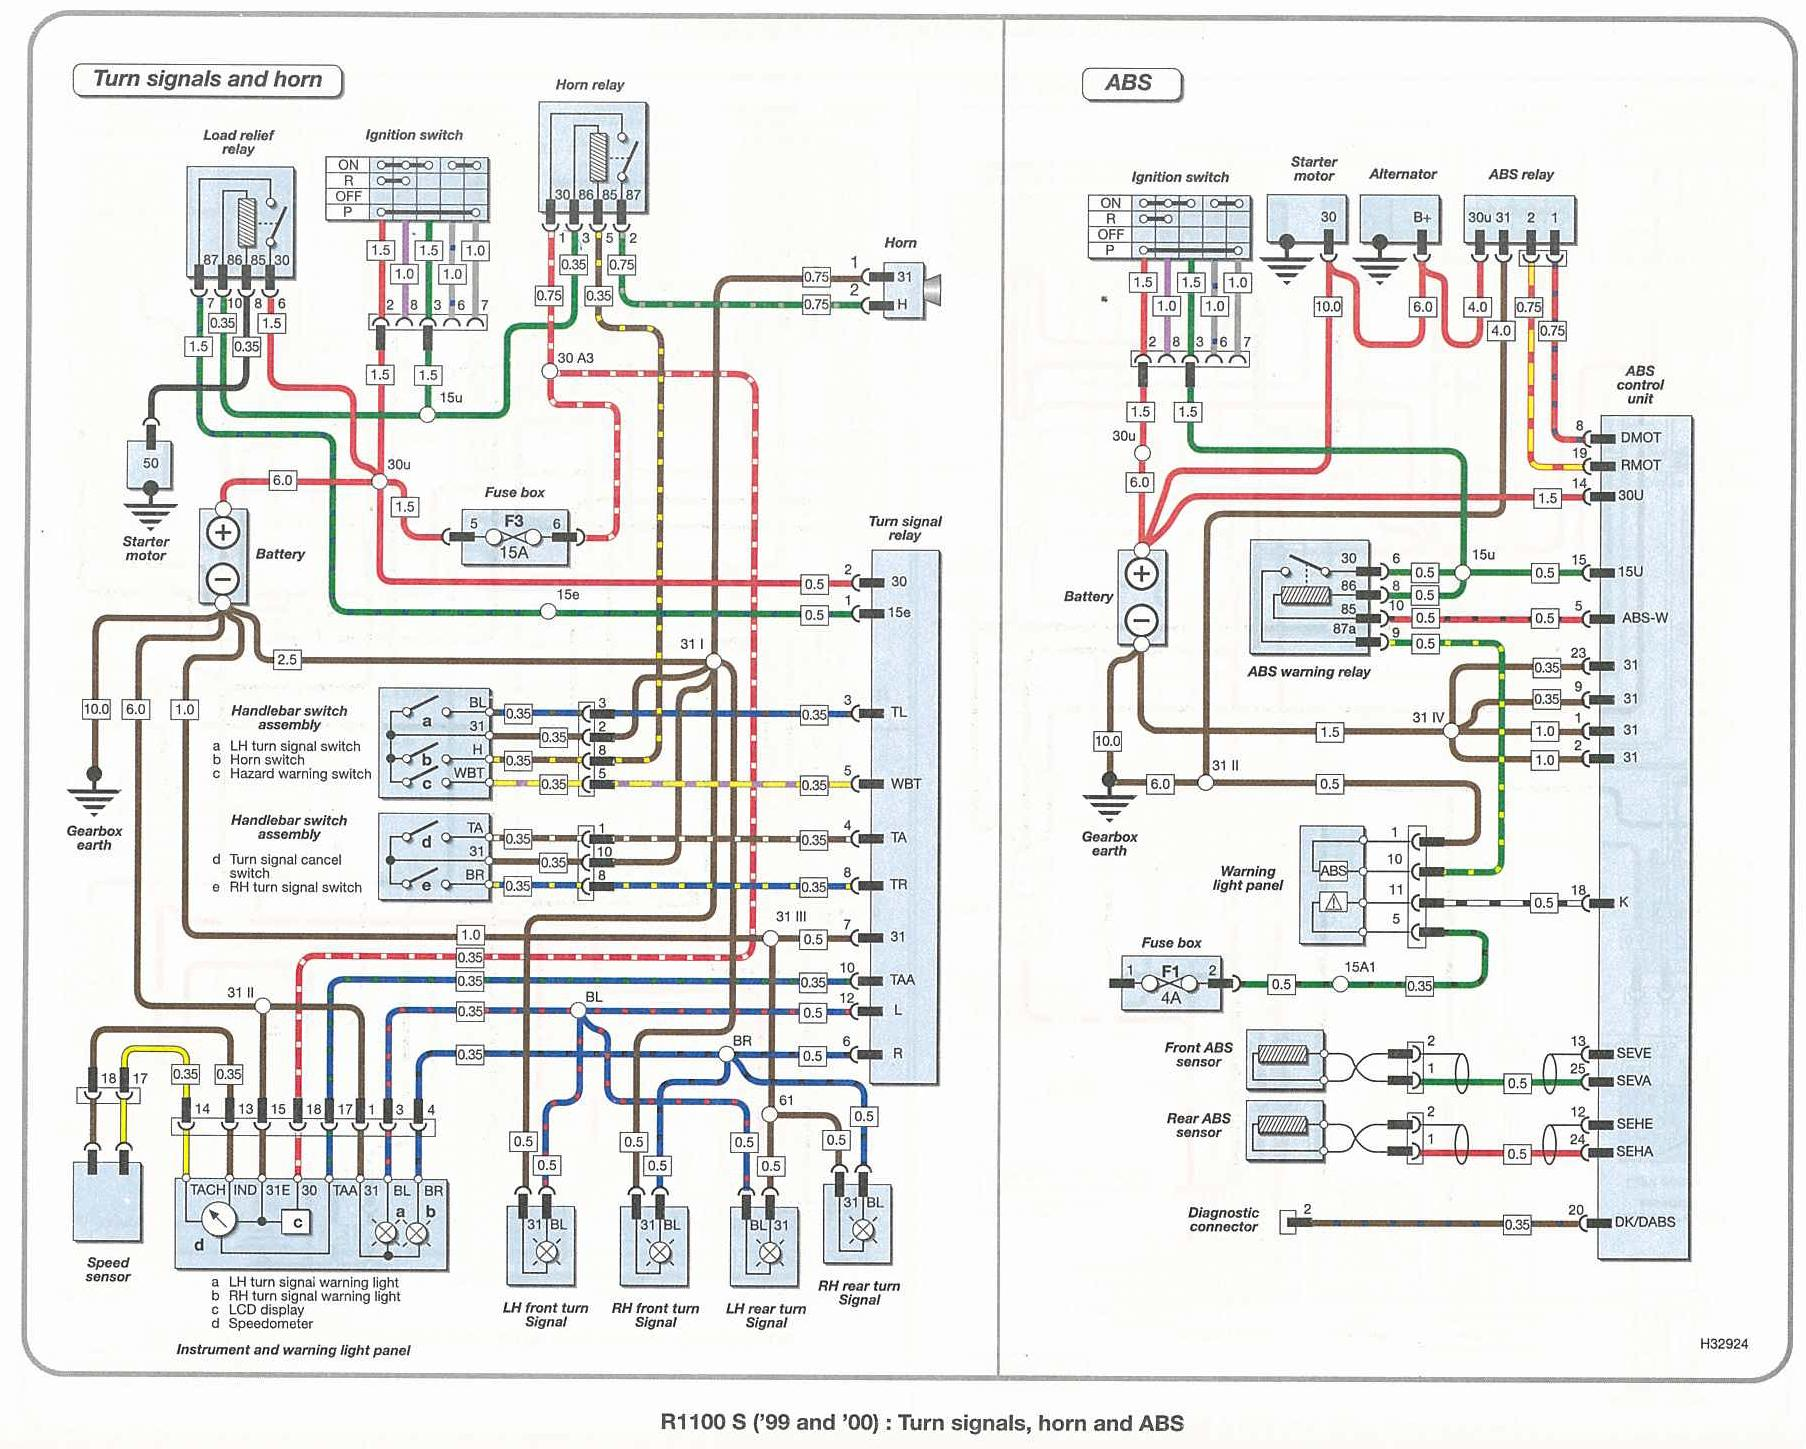 wiring03 bmw r1100s wiring diagrams r1100rt wiring diagram at crackthecode.co